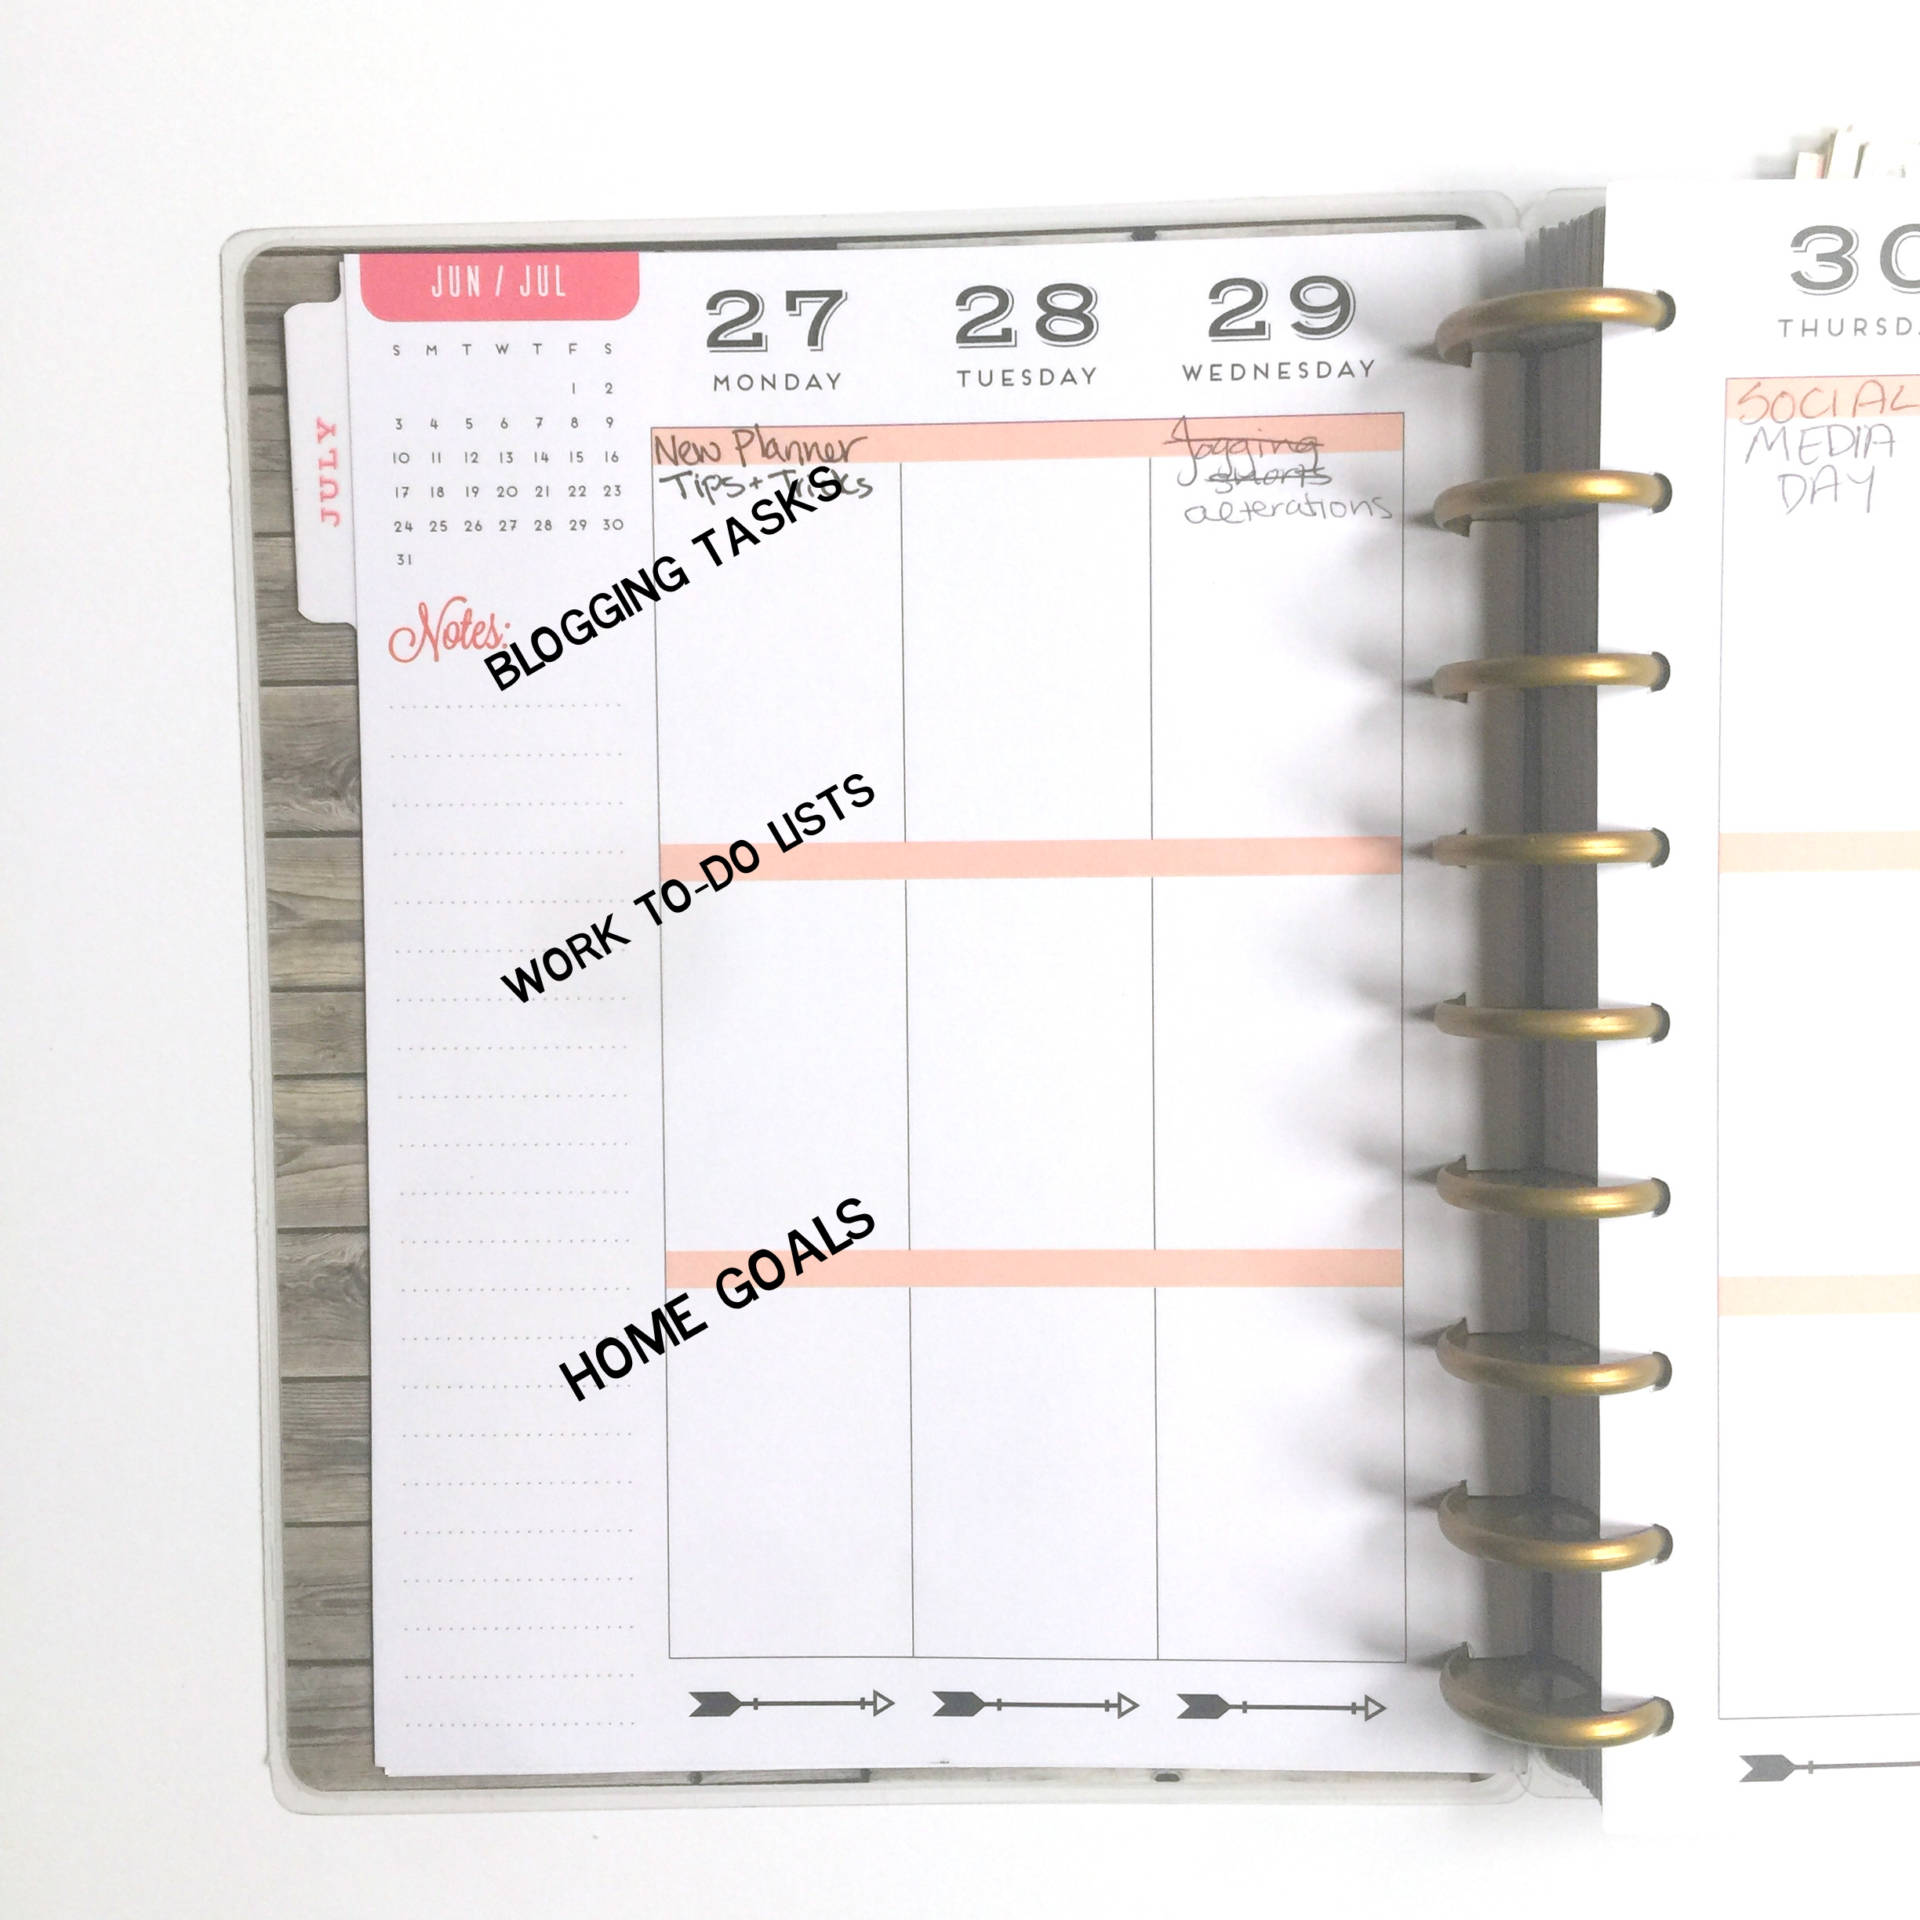 How I'll be using The Happy Planner to keep my life organized